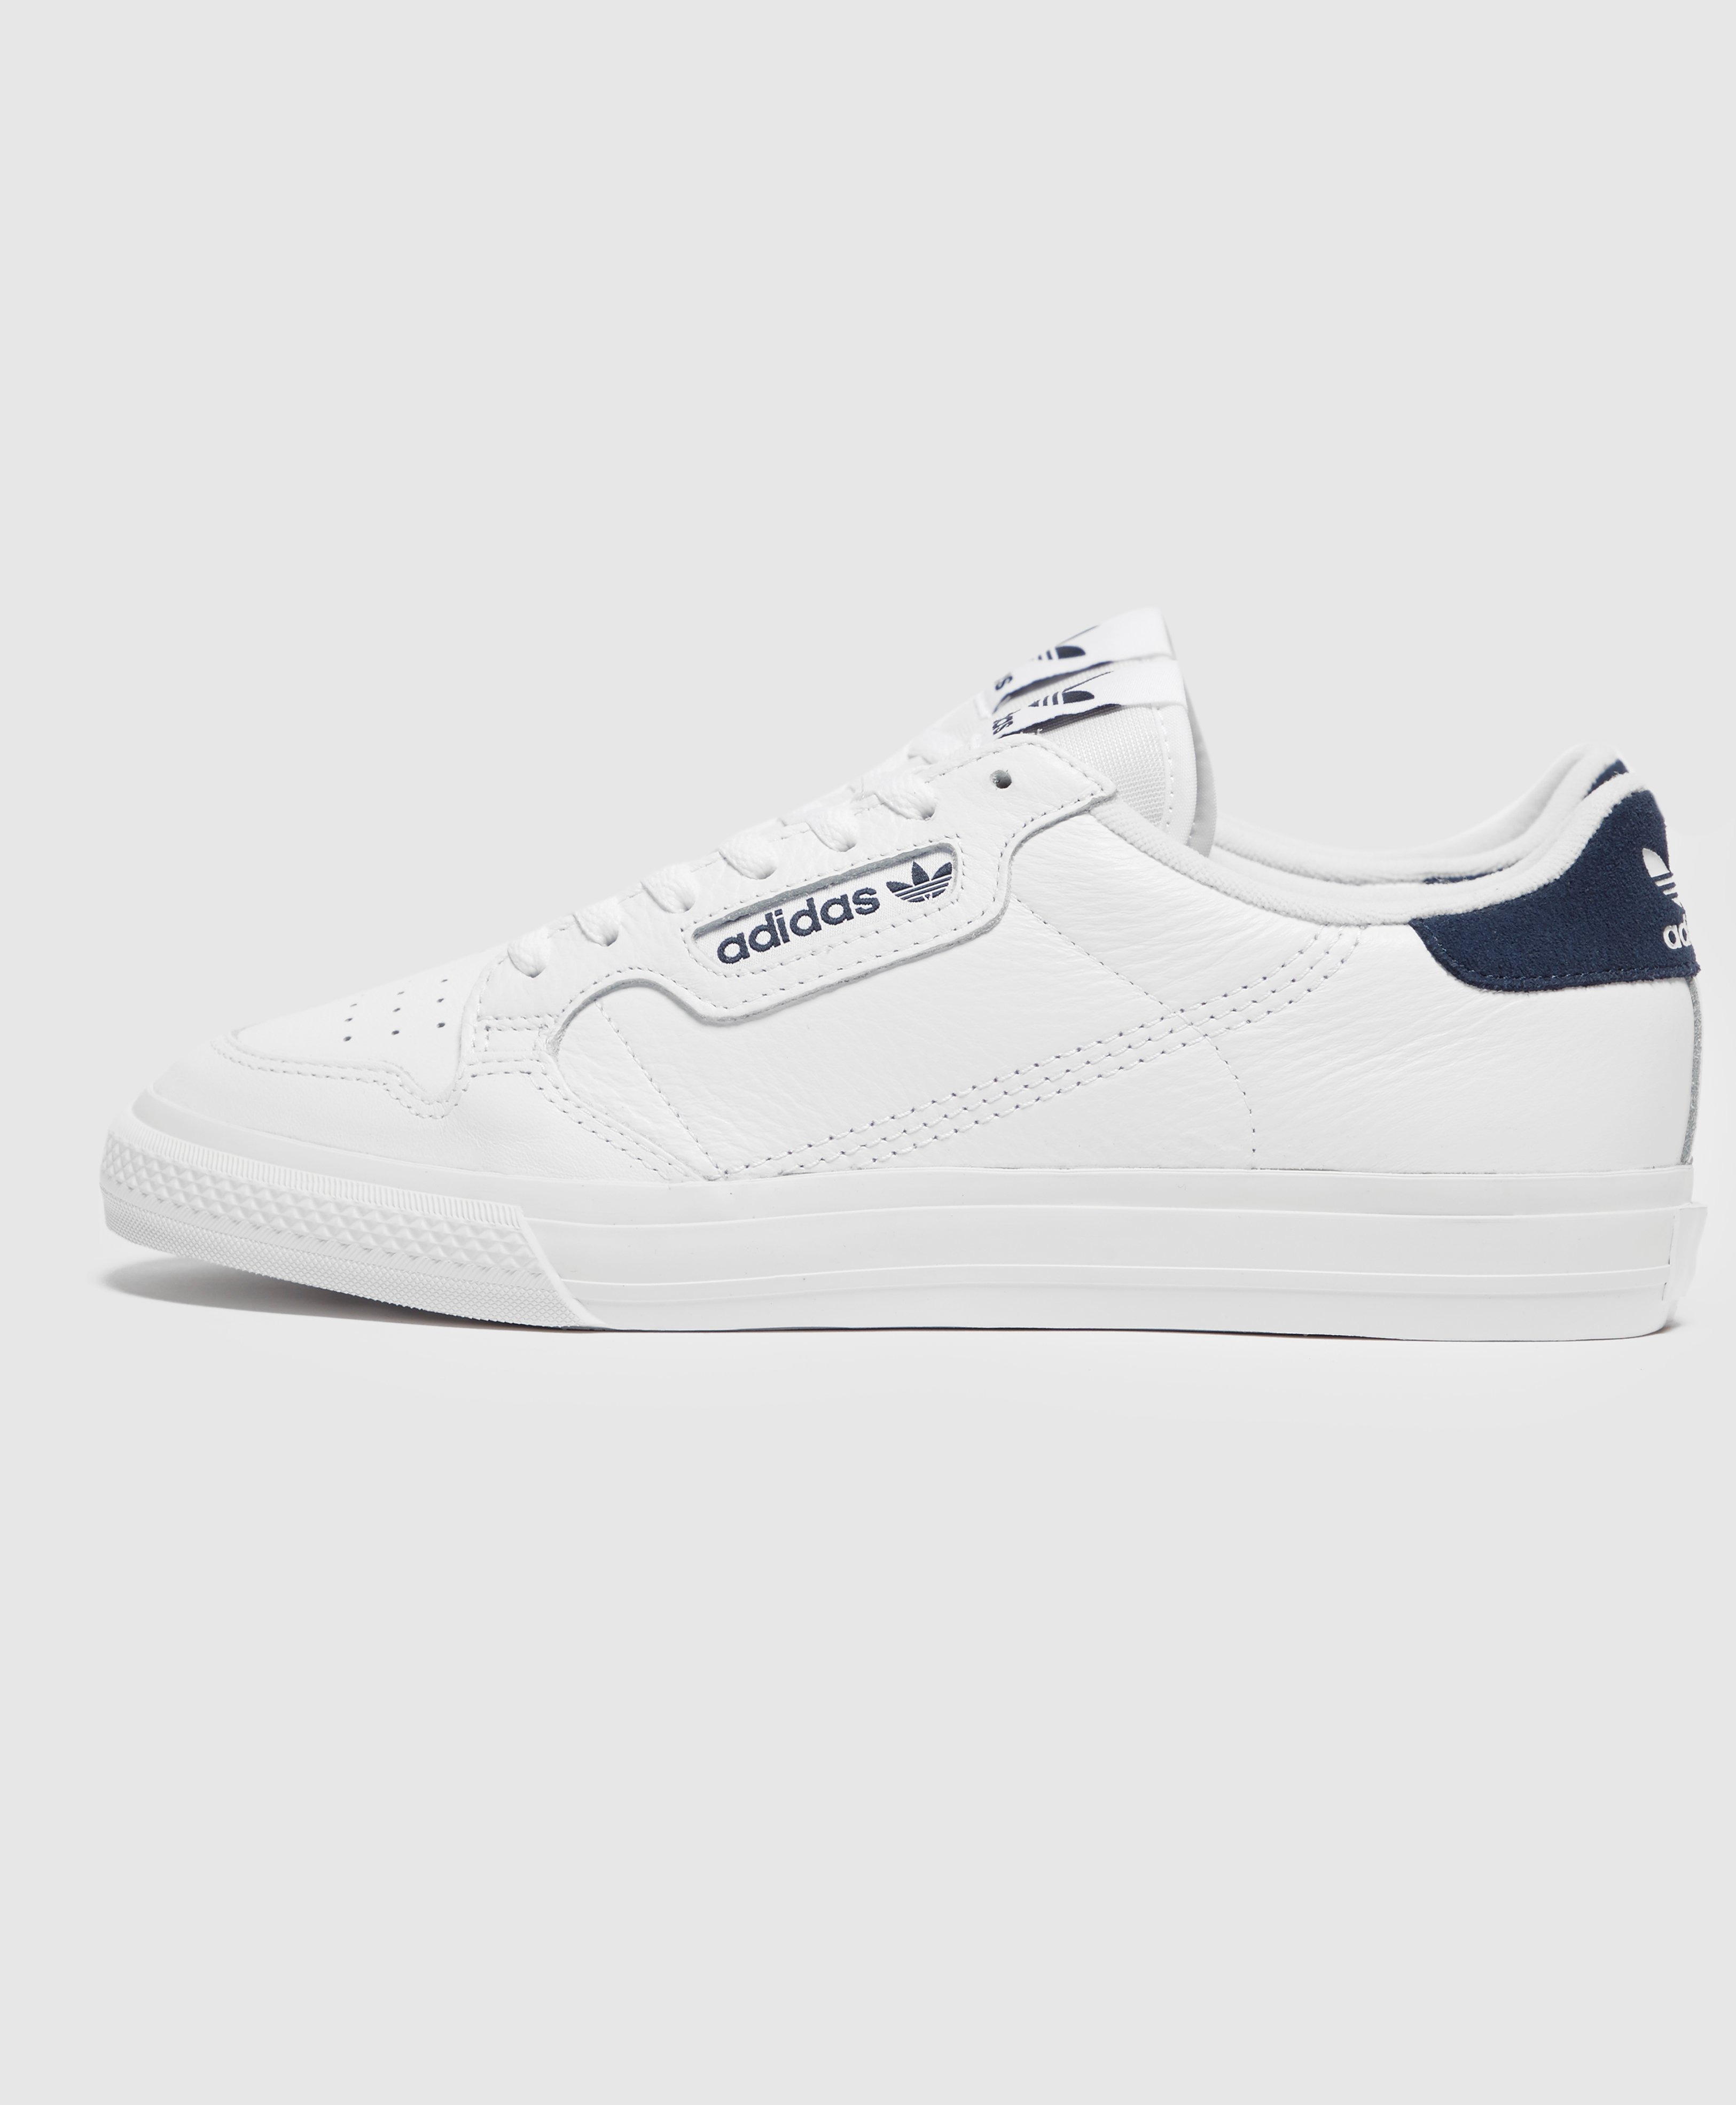 adidas Continental Vulc Trainers in White /& Navy retro leather shoe 80 90s